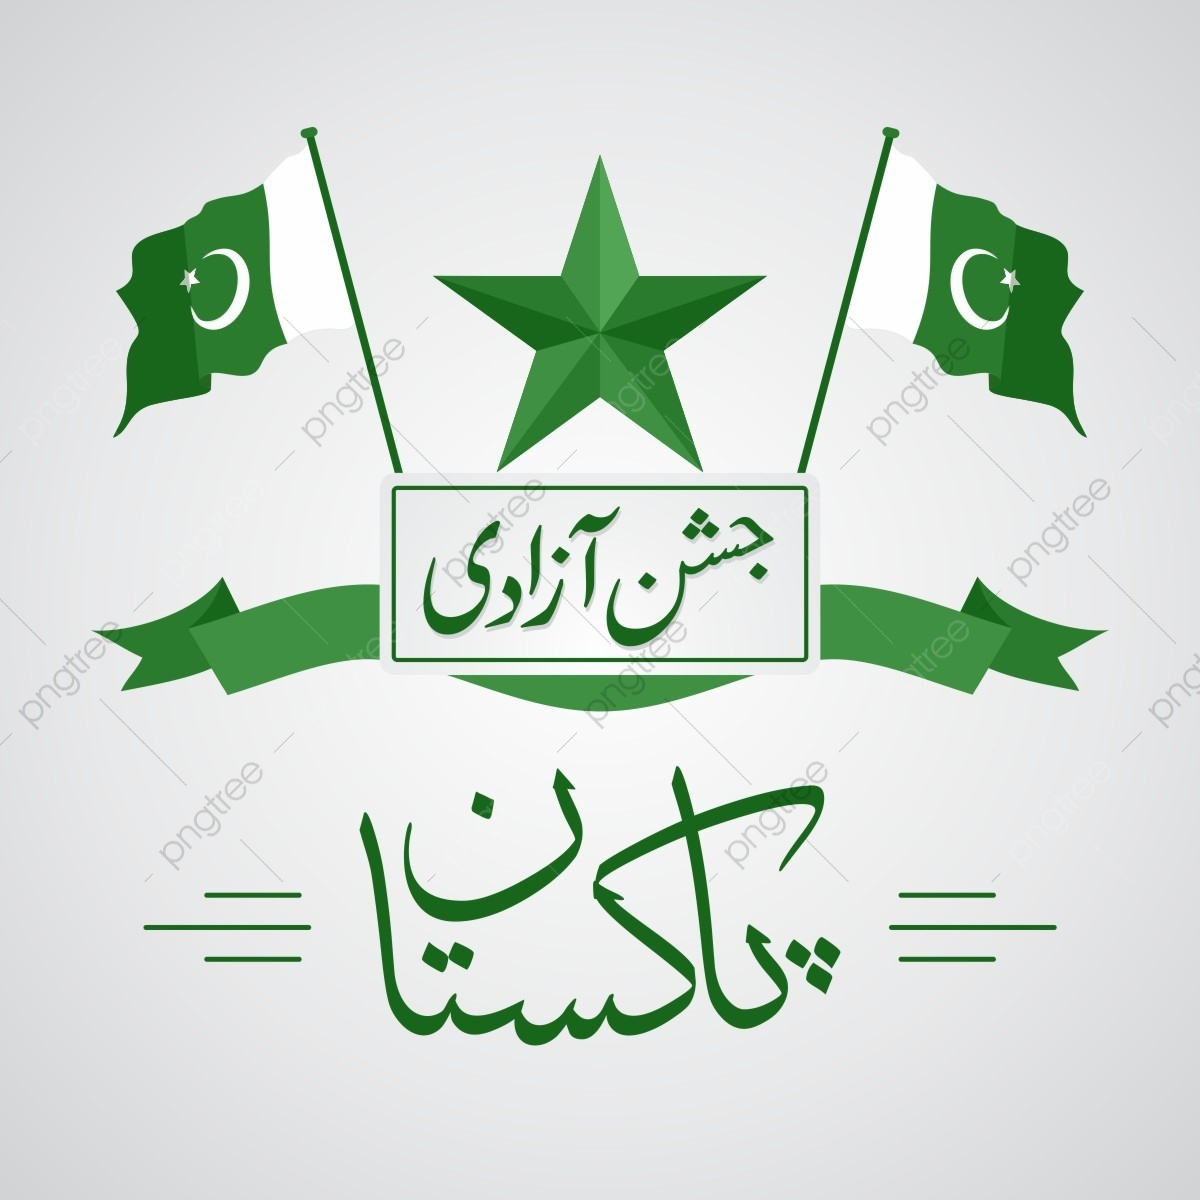 Happy Independence Day 14 August Pakistan Greeting Card August 14 Pakistani Flag Flag Of Pakistan Png And Vector With Transparent Background For Free Download